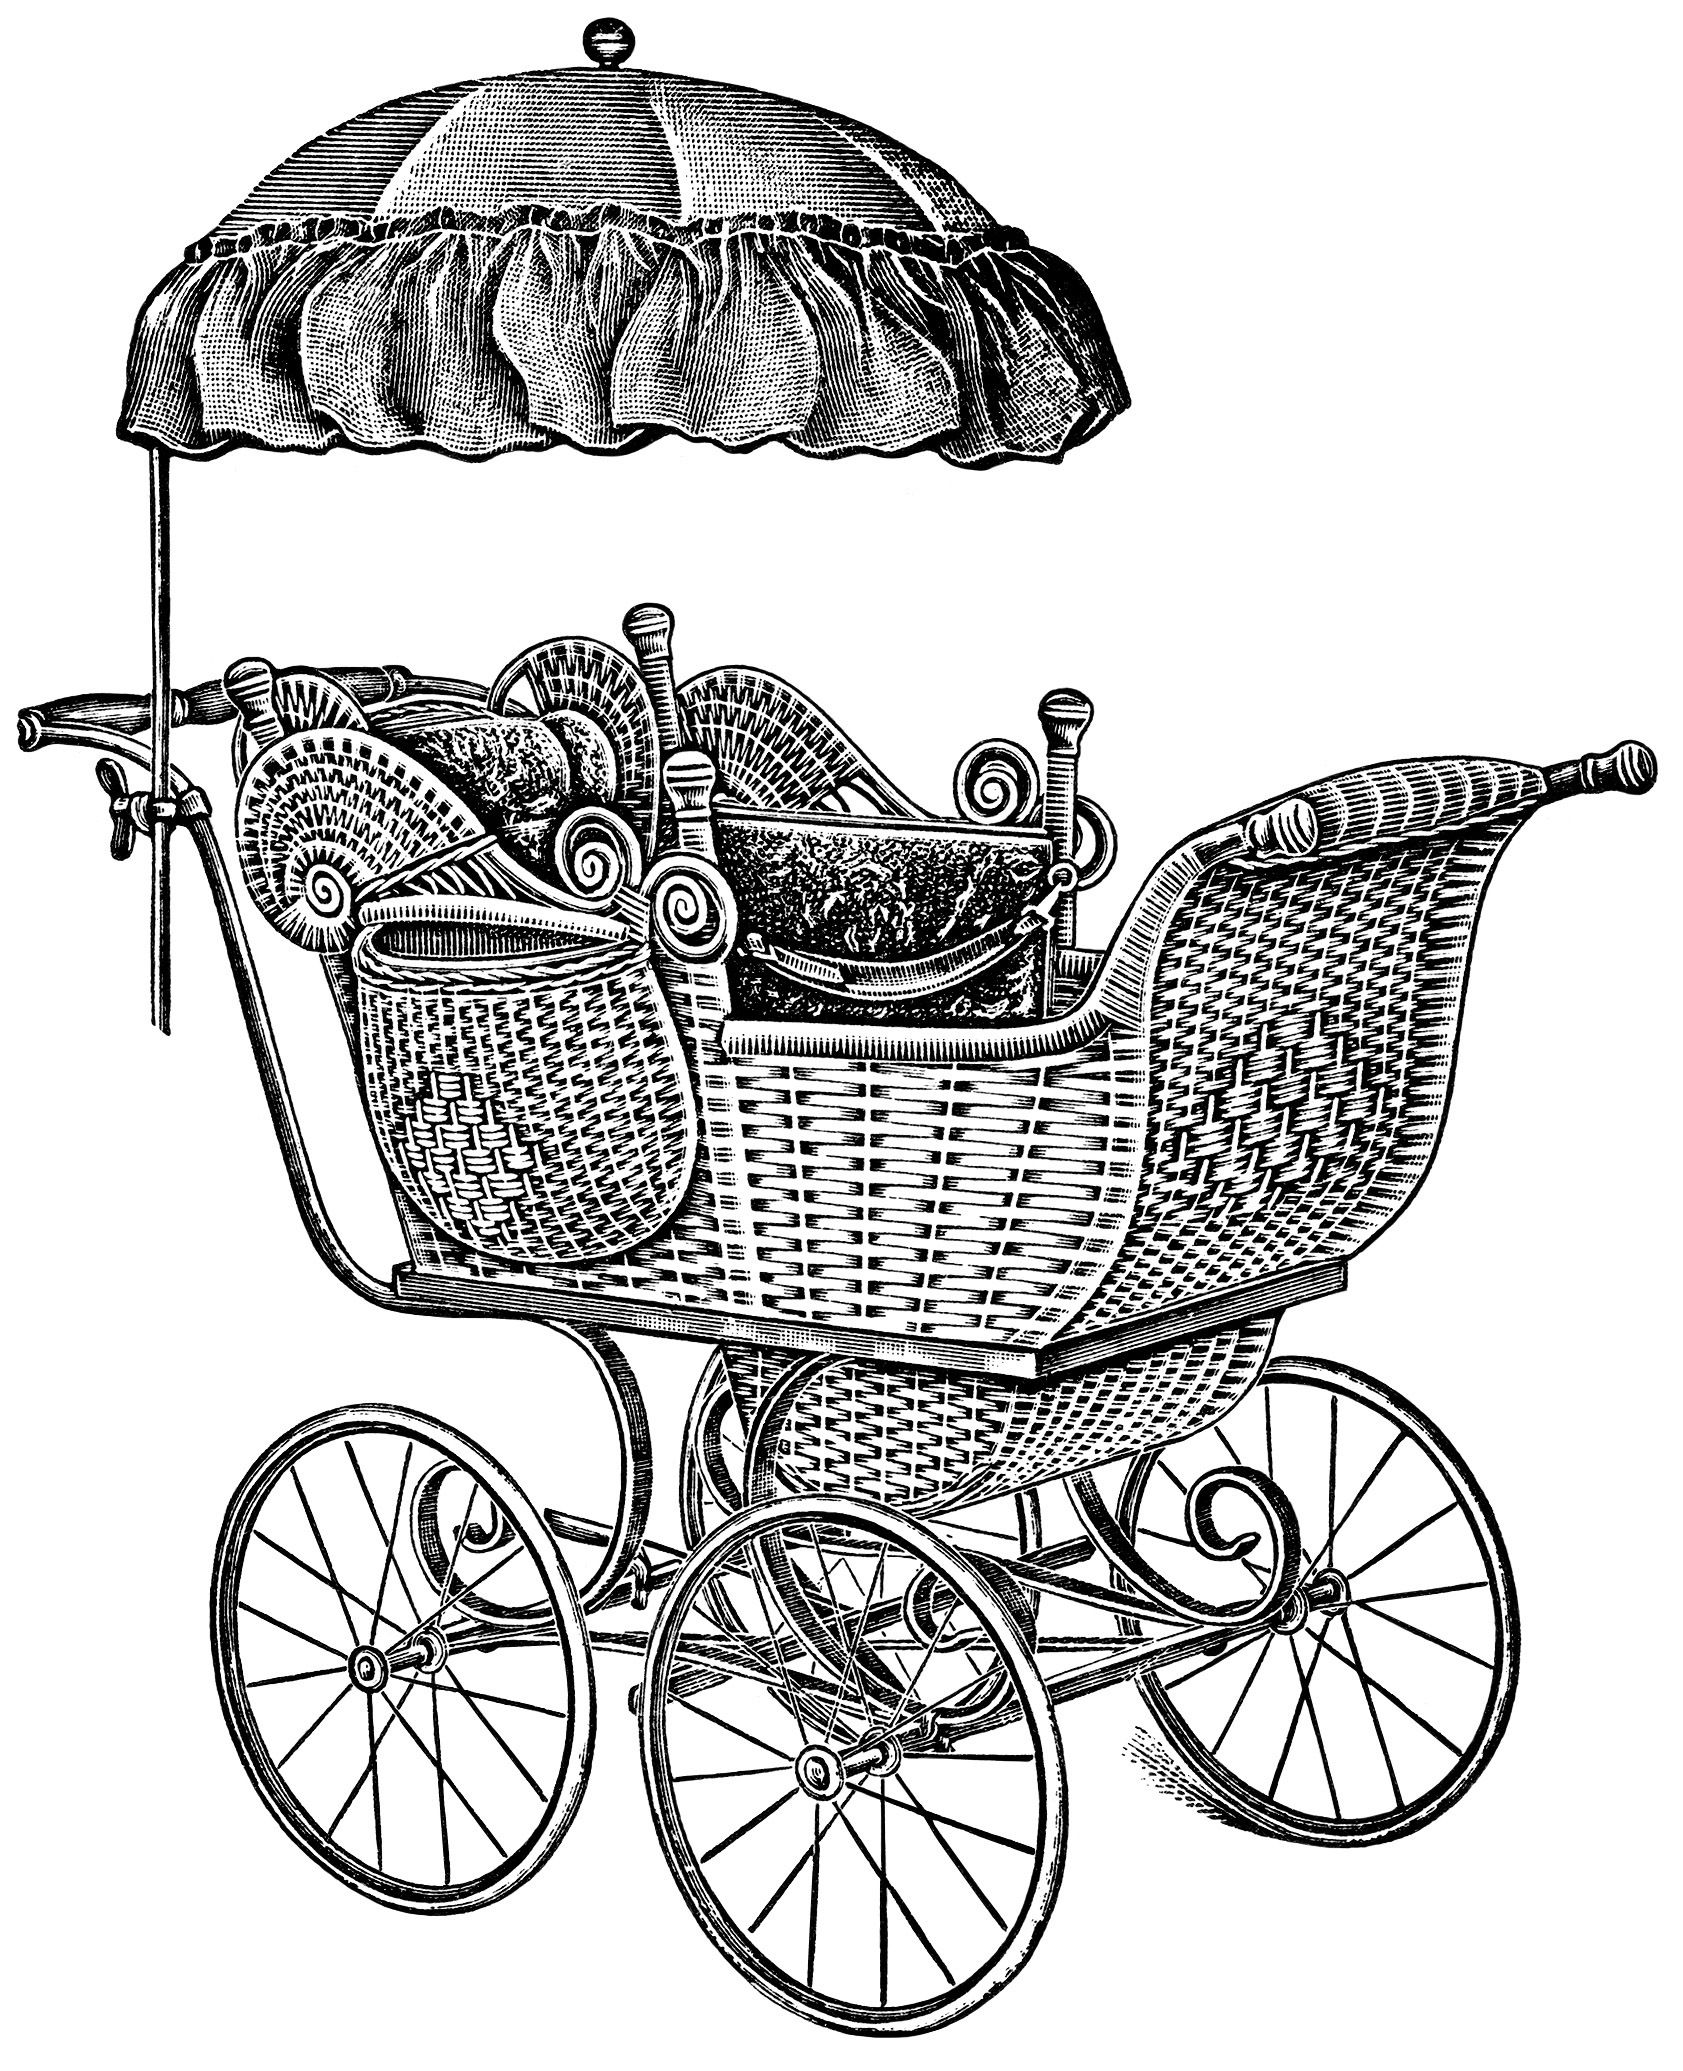 medium resolution of old catalogue page vintage baby clip art antique baby carriage illustration free black and white clipart pram carriage graphic parasol covered baby